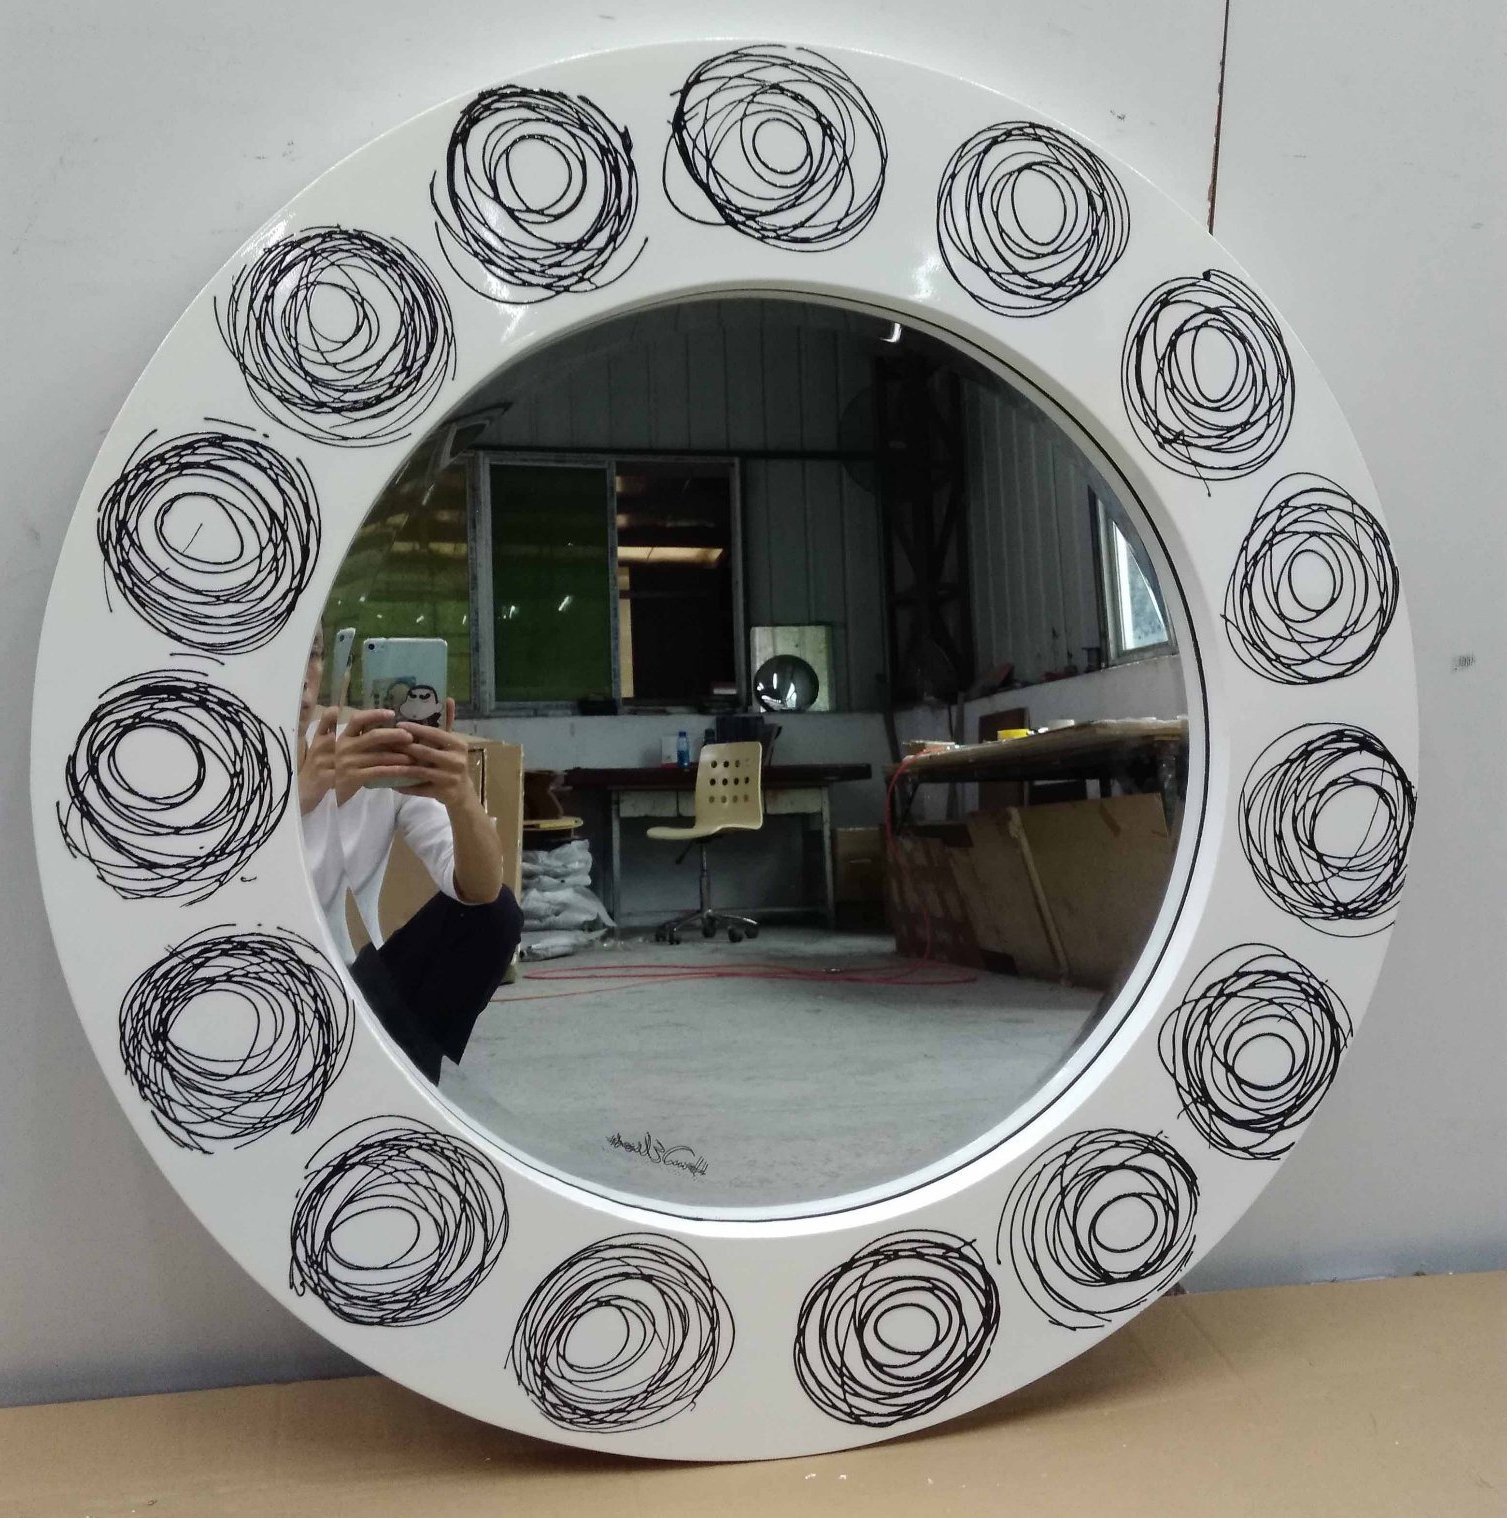 [%[Hot Item] Loops Art Round Modern Decorative Wall Mirror (Lh M17012) Throughout Latest Modern Decorative Wall Mirrors|Modern Decorative Wall Mirrors Throughout Widely Used [Hot Item] Loops Art Round Modern Decorative Wall Mirror (Lh M17012)|Well Liked Modern Decorative Wall Mirrors For [Hot Item] Loops Art Round Modern Decorative Wall Mirror (Lh M17012)|Trendy [Hot Item] Loops Art Round Modern Decorative Wall Mirror (Lh M17012) With Regard To Modern Decorative Wall Mirrors%] (View 1 of 20)